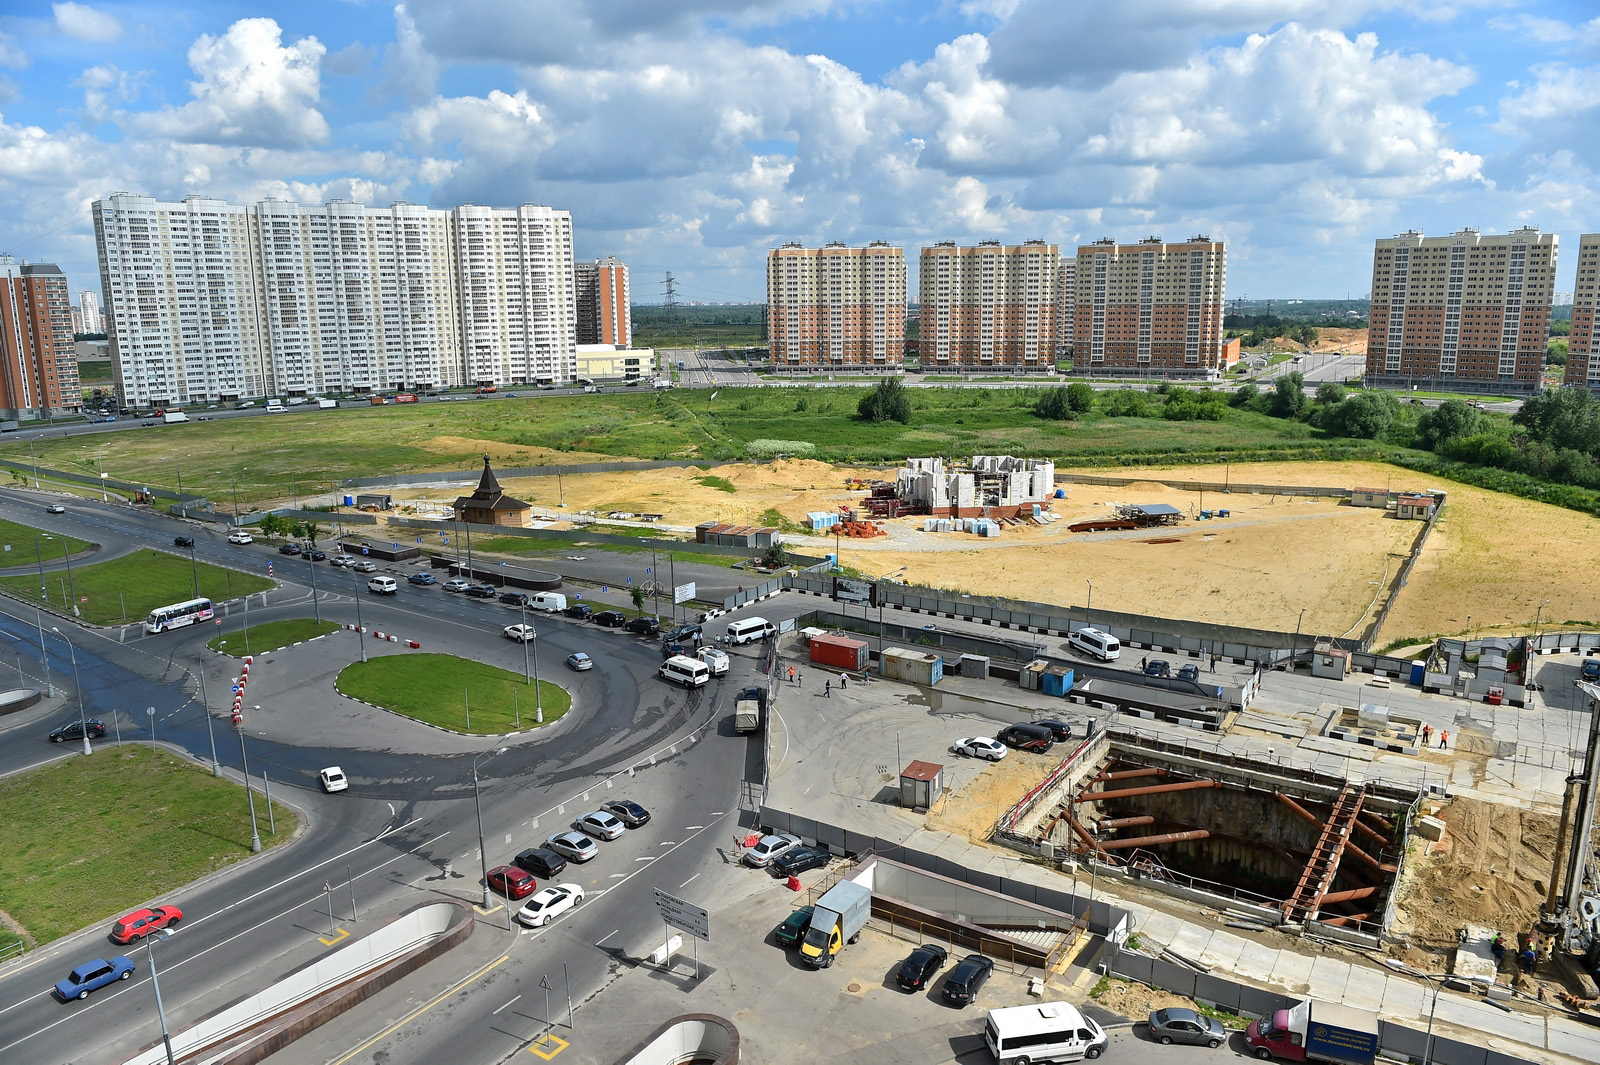 In Nekrasovka, roads will be laid as part of the construction of the Lyubertsy aeration station 55